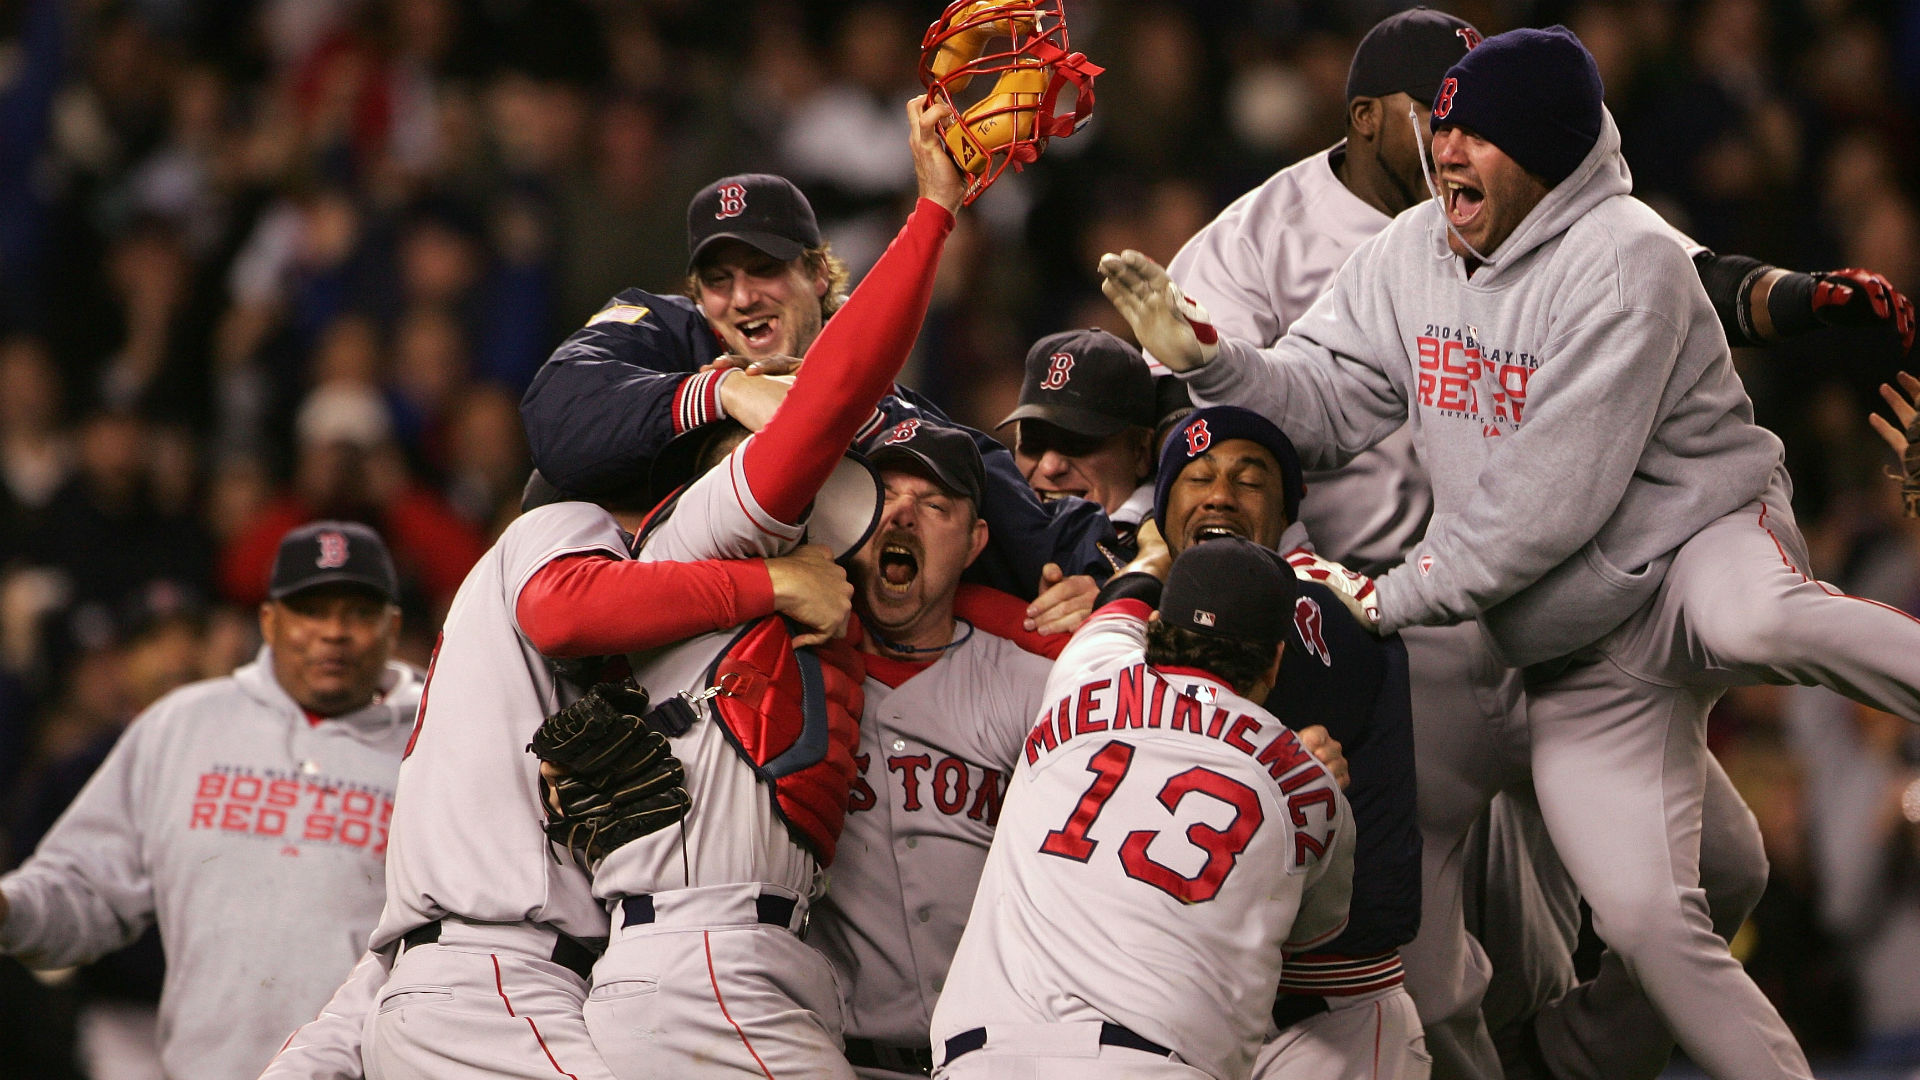 Astros aren't anything like '04 Red Sox, even if they come back from down 3-0 in ALCS